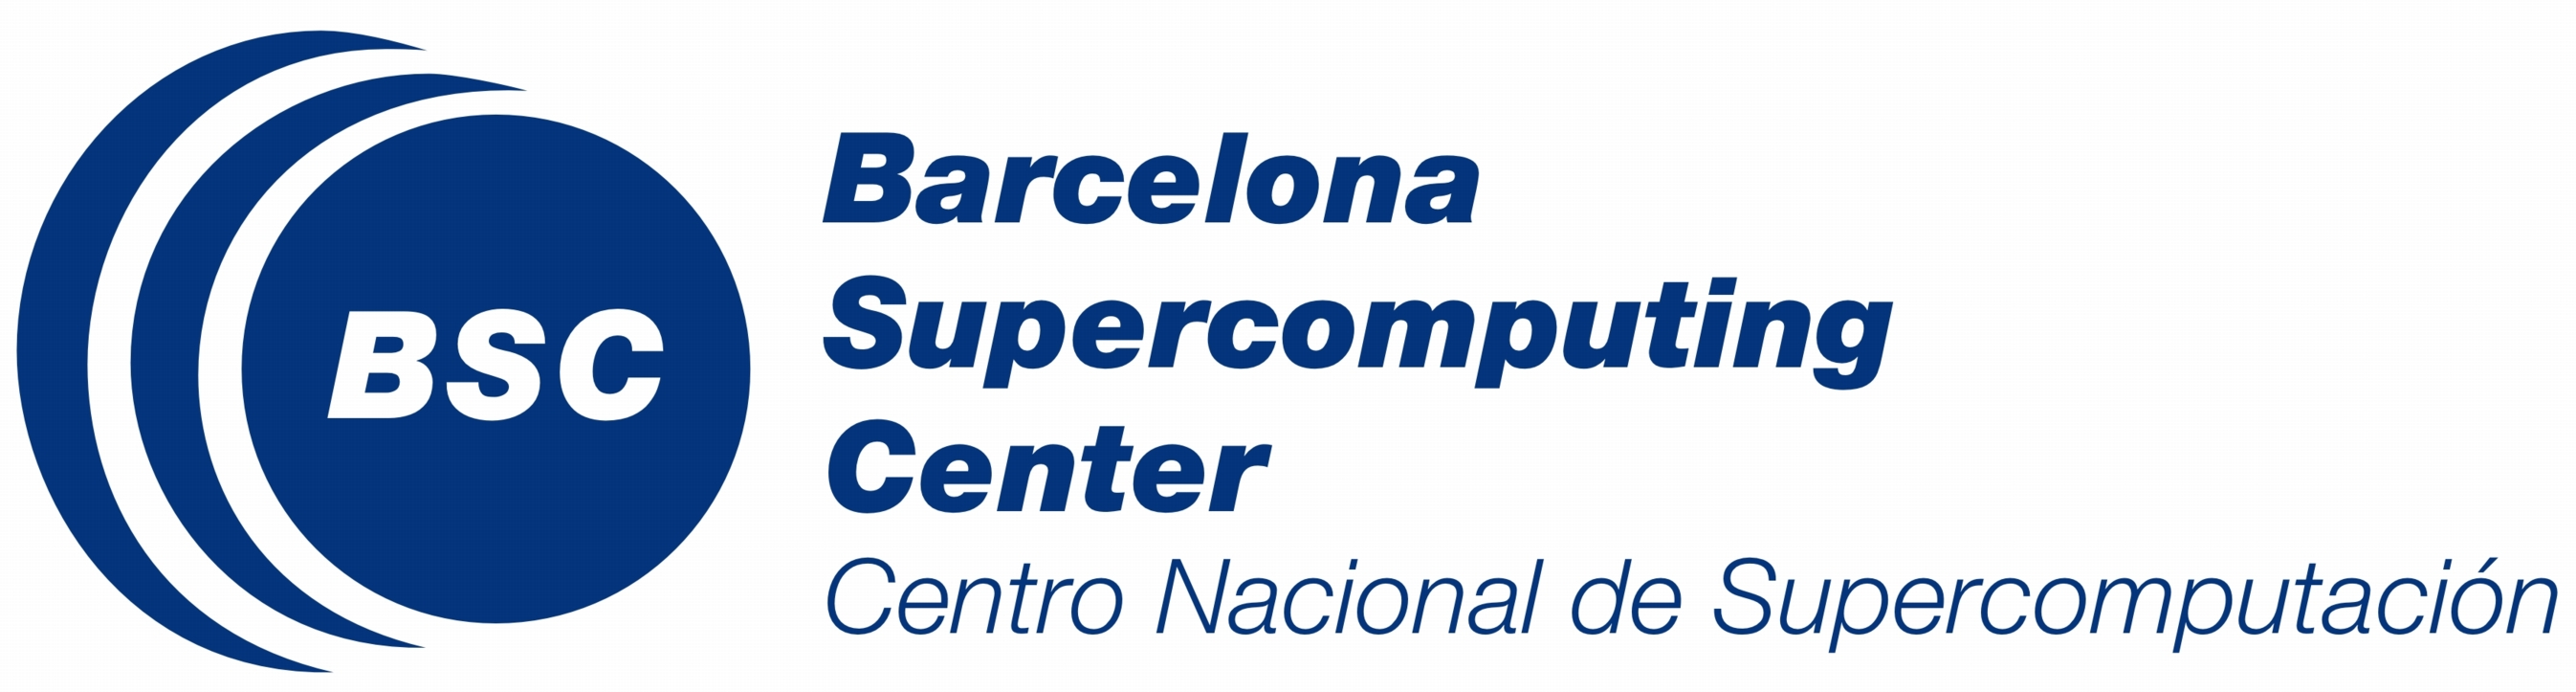 BSC - Barcelona Supercomputing Center